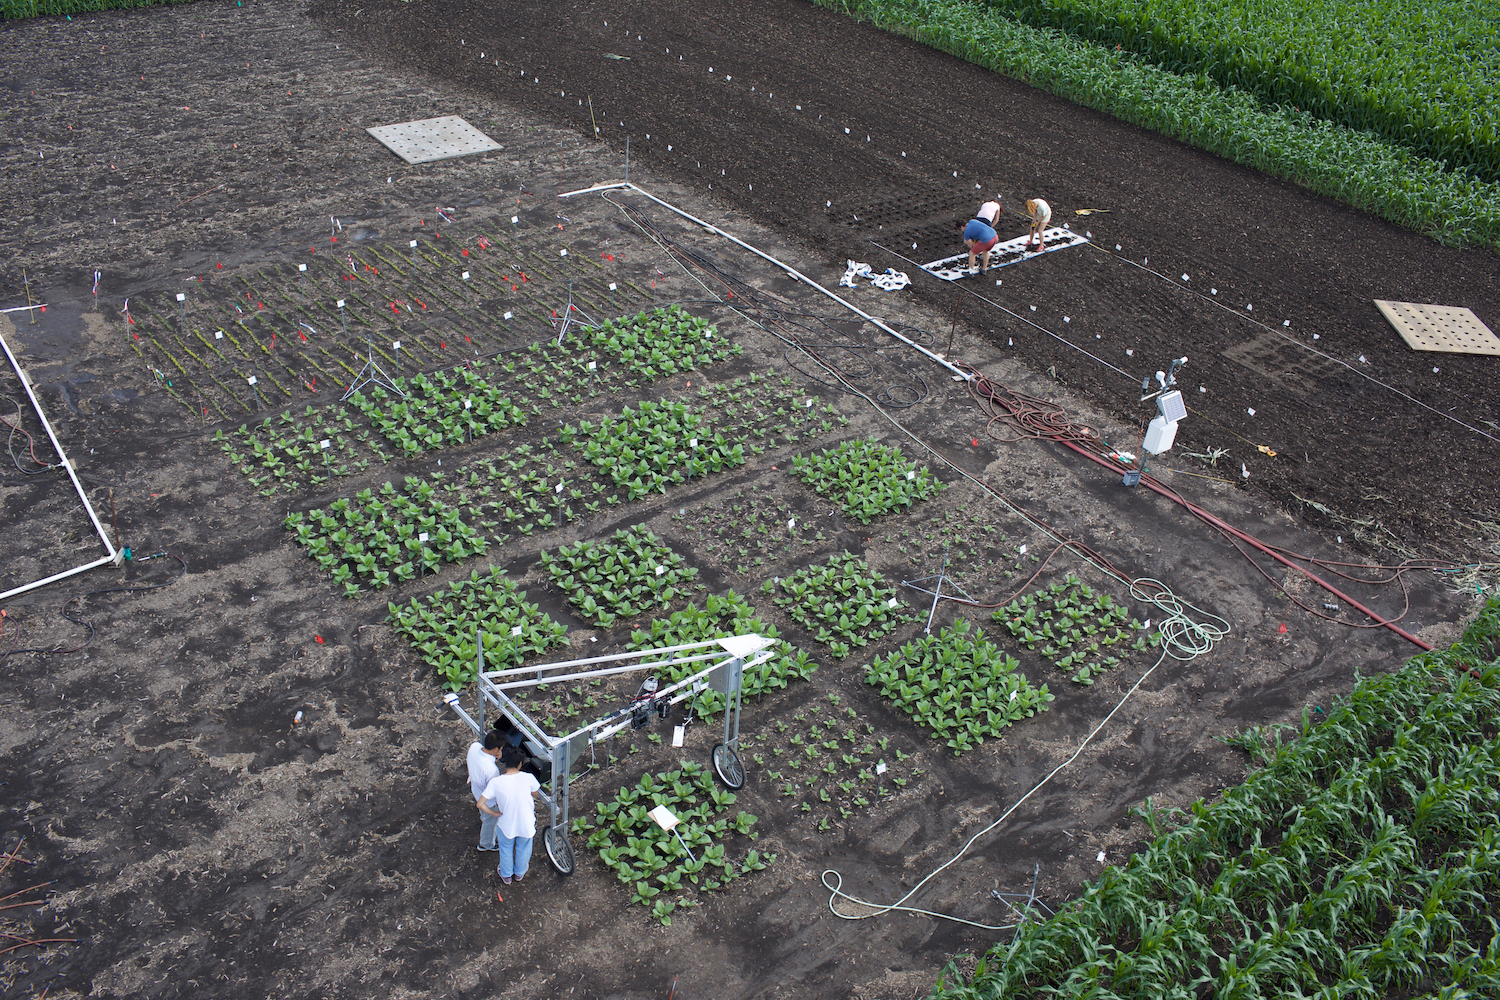 University of Illinois researchers using cameras to screen entire research plots for the top-performing plant traits.